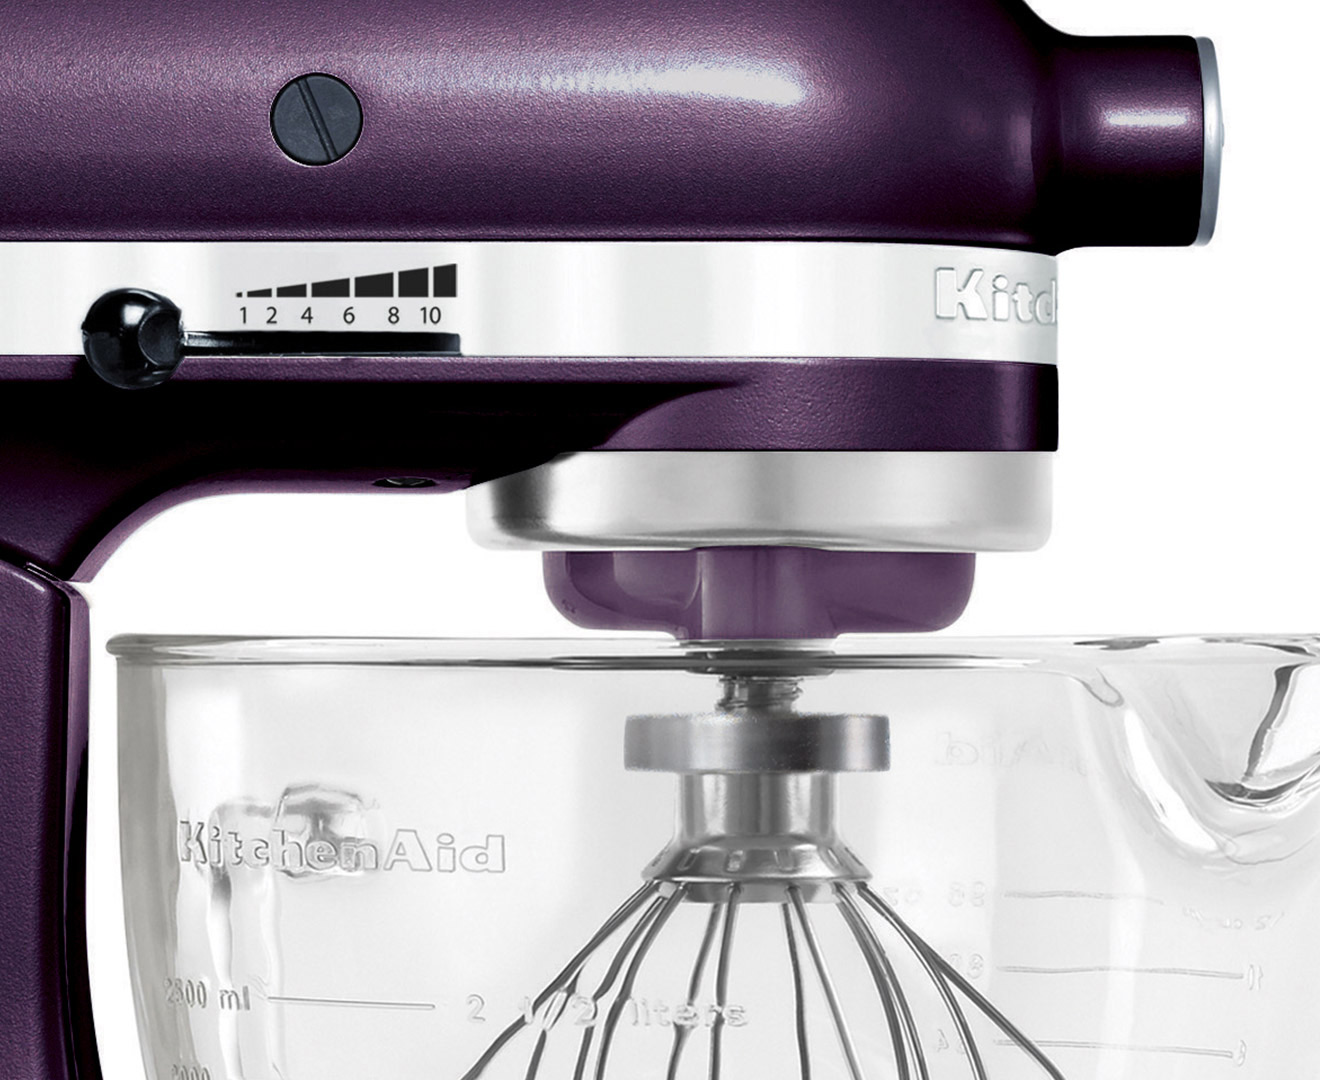 A smaller version of commercial-size models, this versatile stand mixer is designed with enough power and capacity to prepare large batches of cake batter or cookie dough without compromising your kitchen counter space. It's expertly hand assemble.